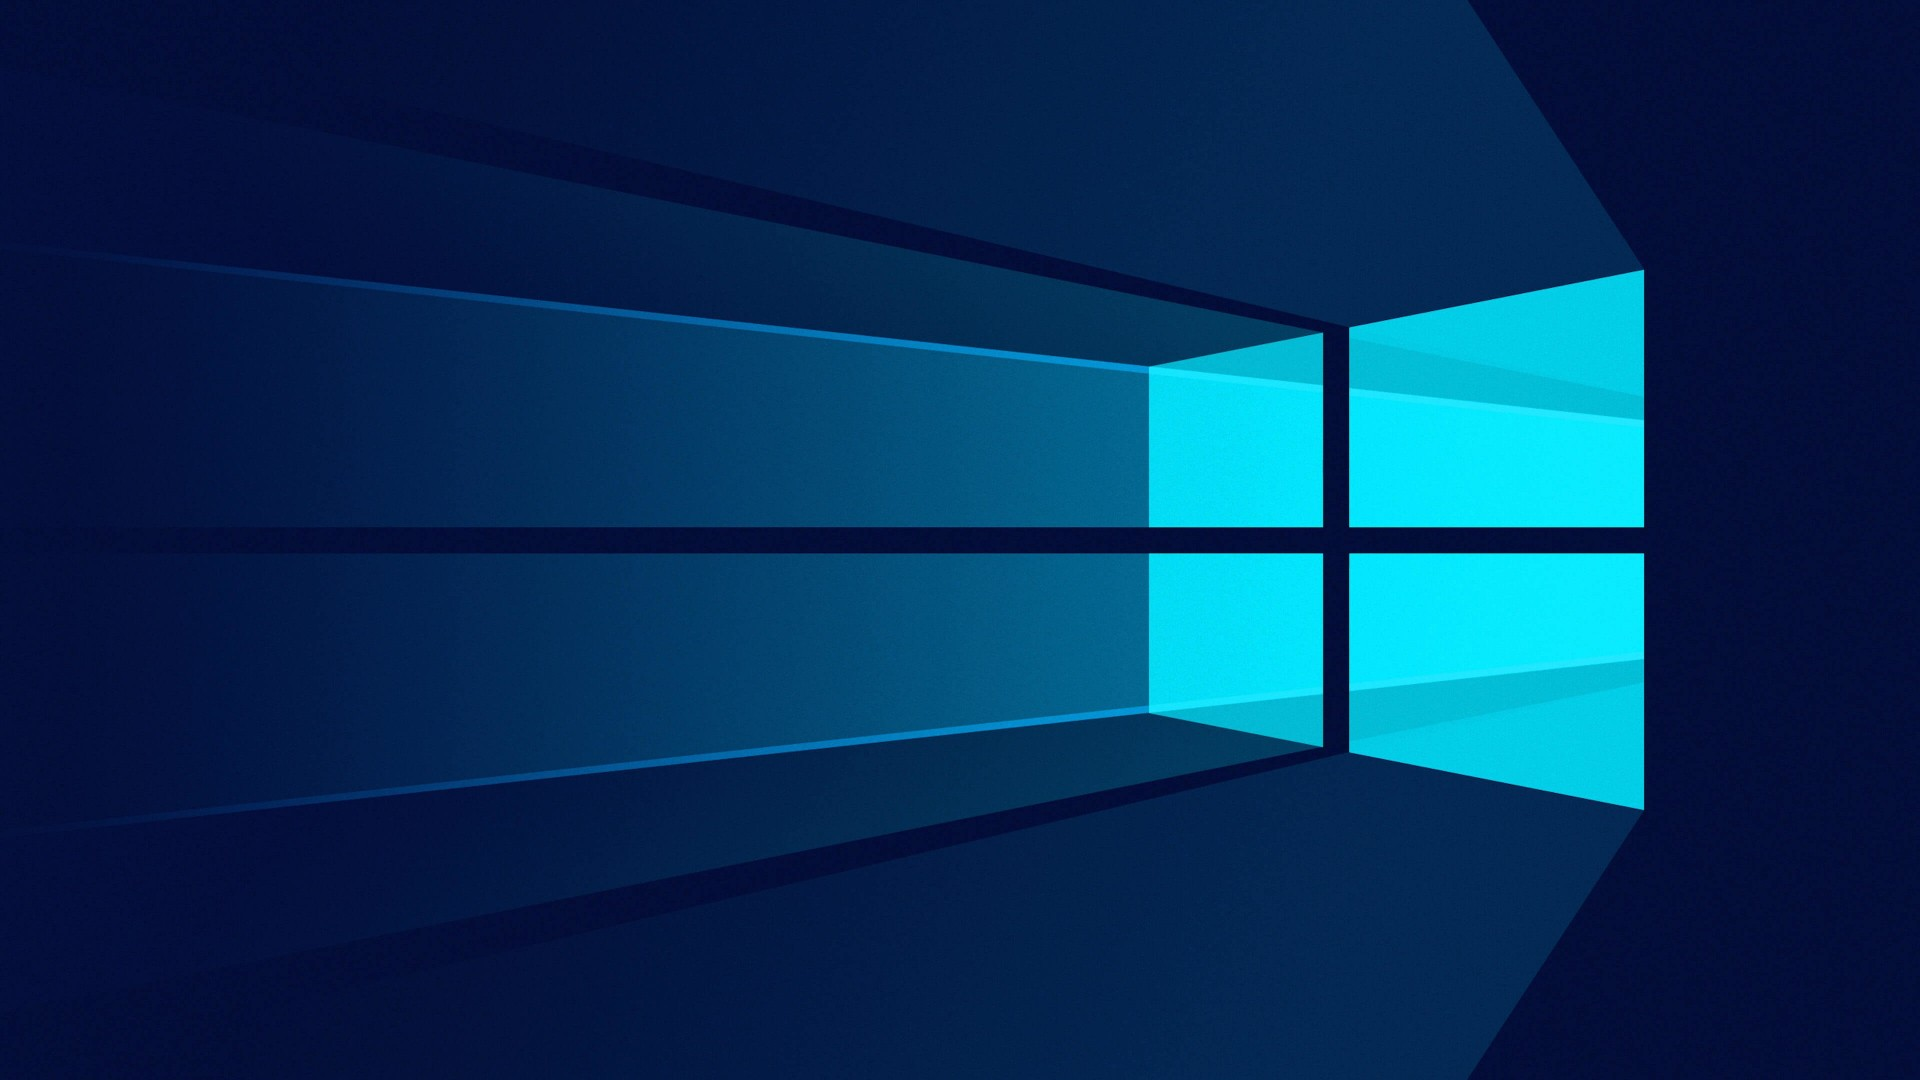 Download Windows 10 Flat HD wallpaper for 1920 x 1080 - HDwallpapers ...: https://www.hdwallpapers.net/preview/windows-10-flat-wallpaper-for...